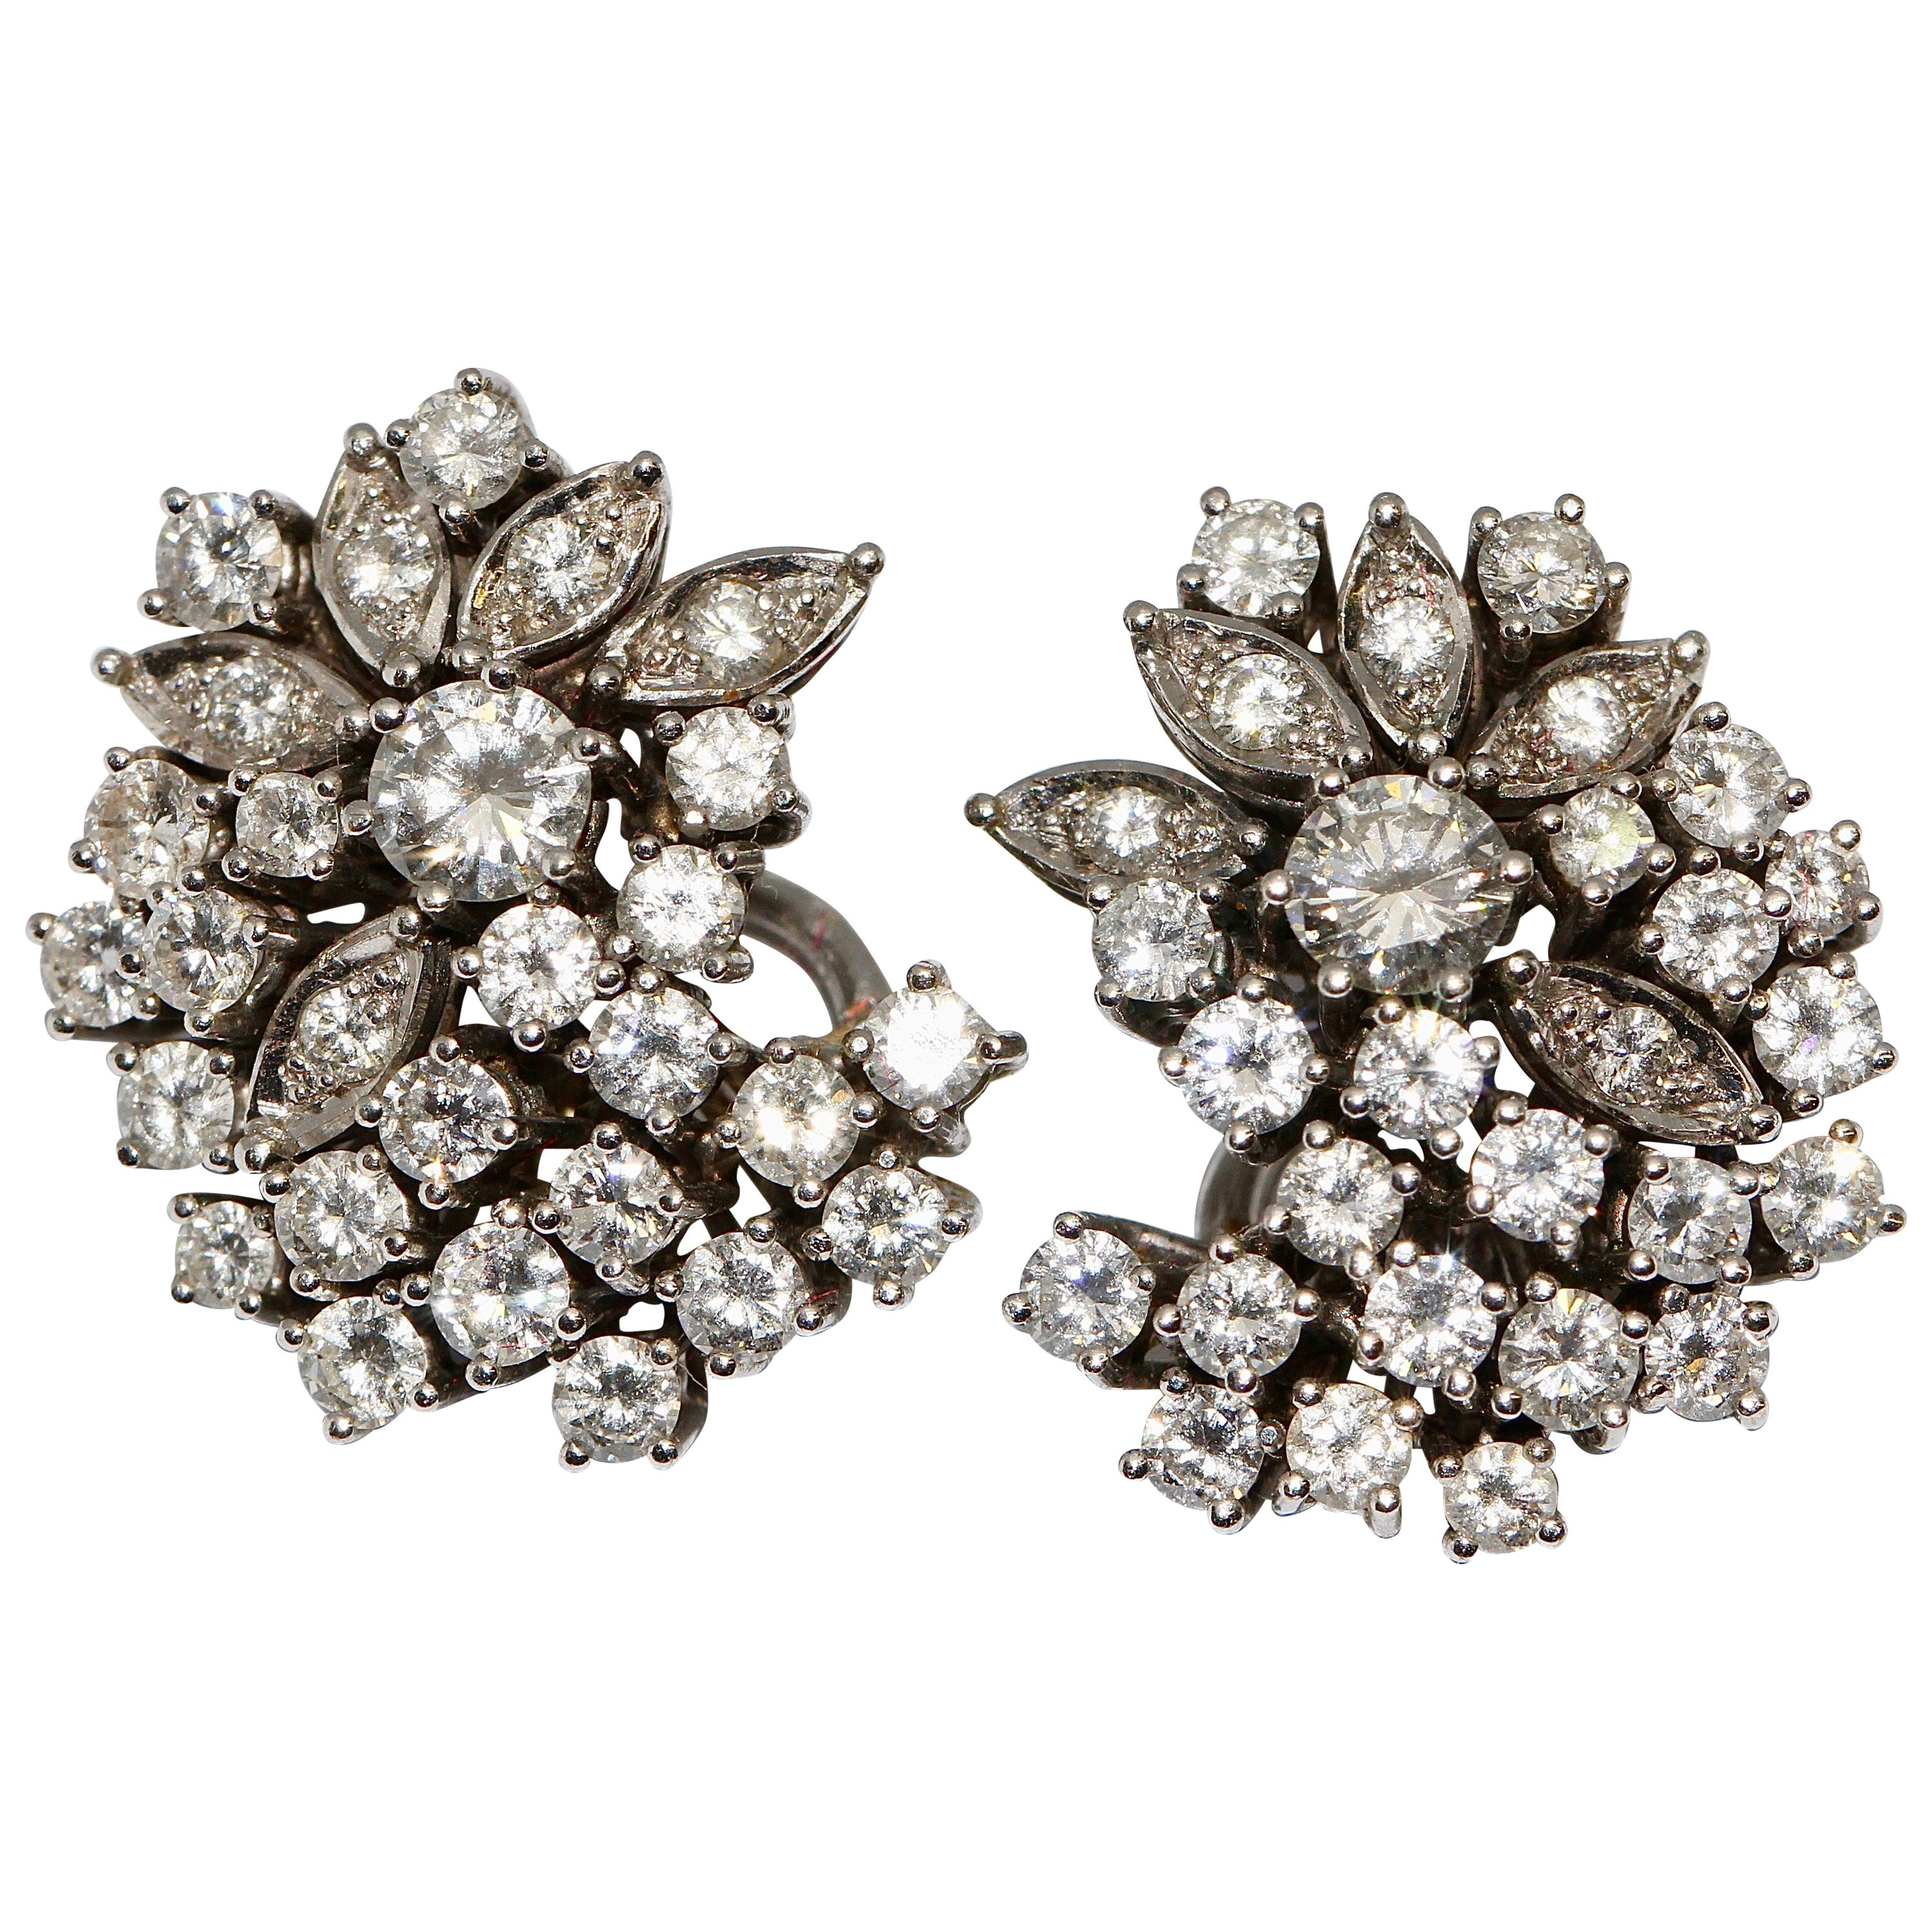 Solitaire Diamond Earrings, Clips, 14 Karat White Gold, Total Almost 4 Carat